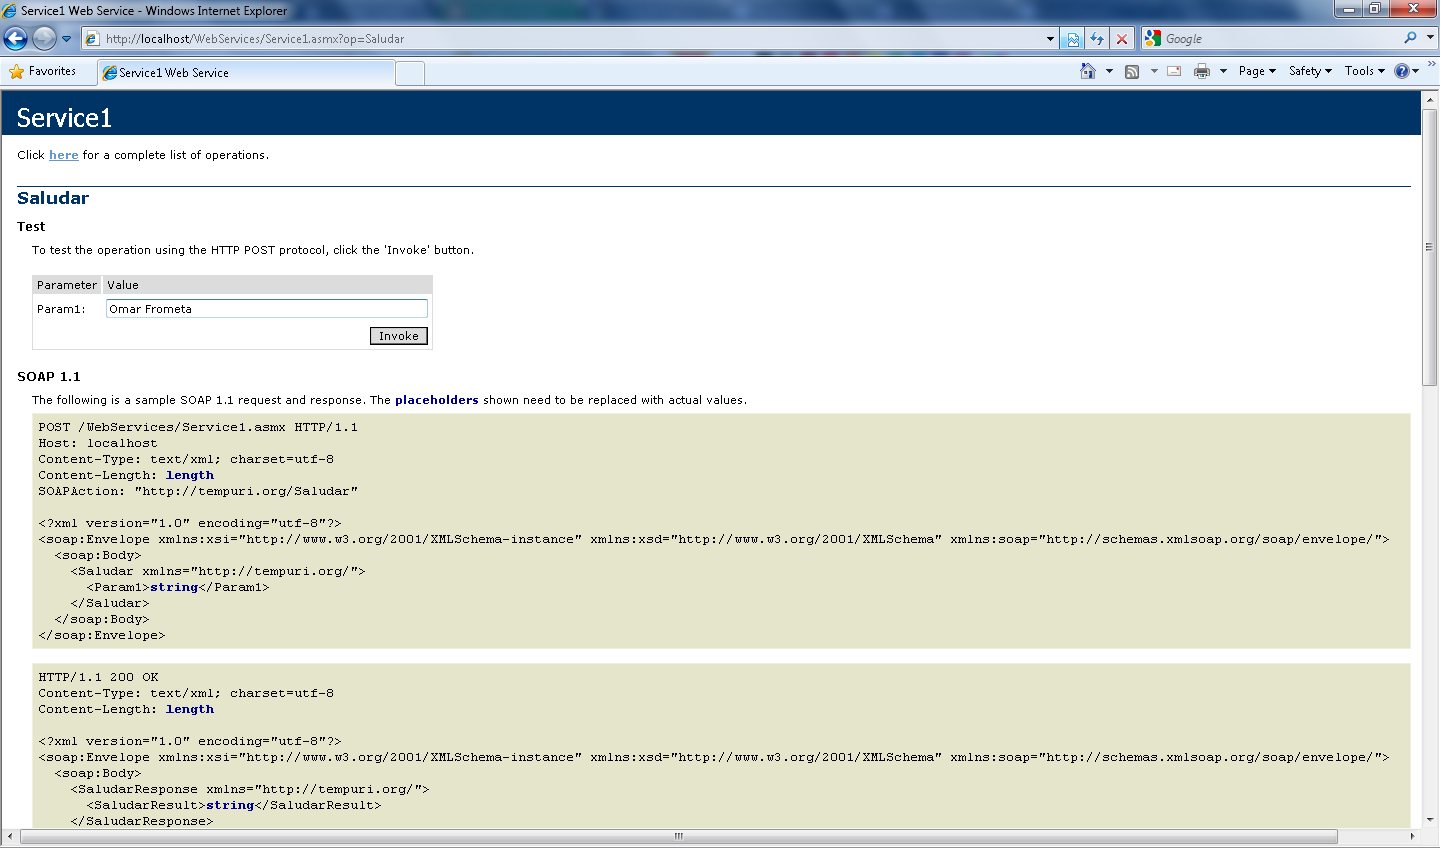 How to invoke a Web Service from a Stored Procedure